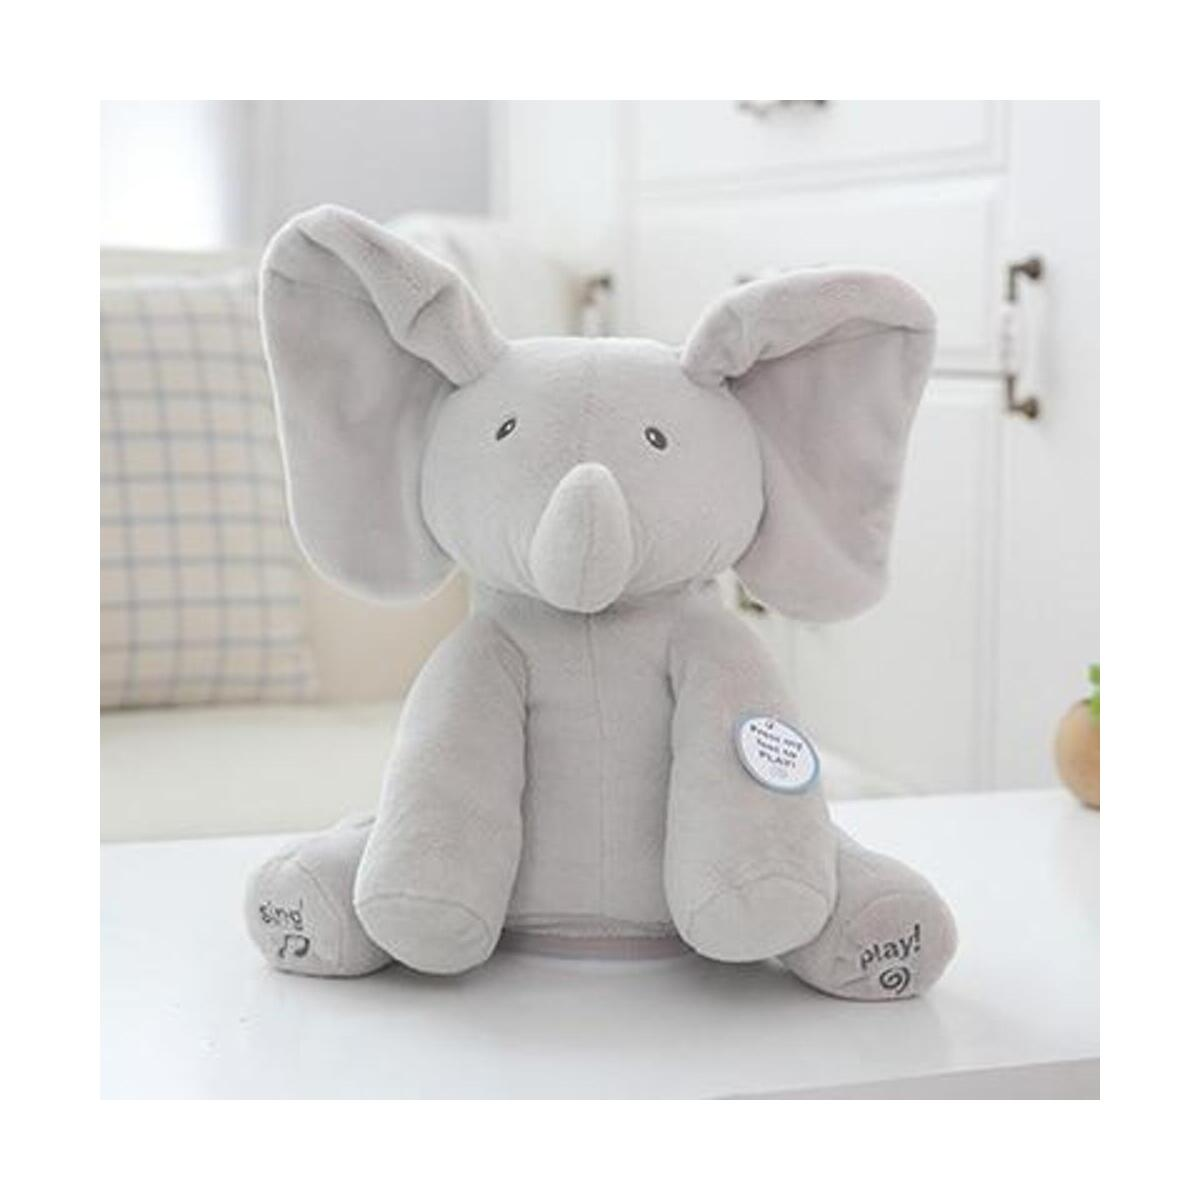 Peek-a-boo Elephant Baby Plush Toy Talking Animated  Singing Stuffed Kids Music Cute Doll stuff toys